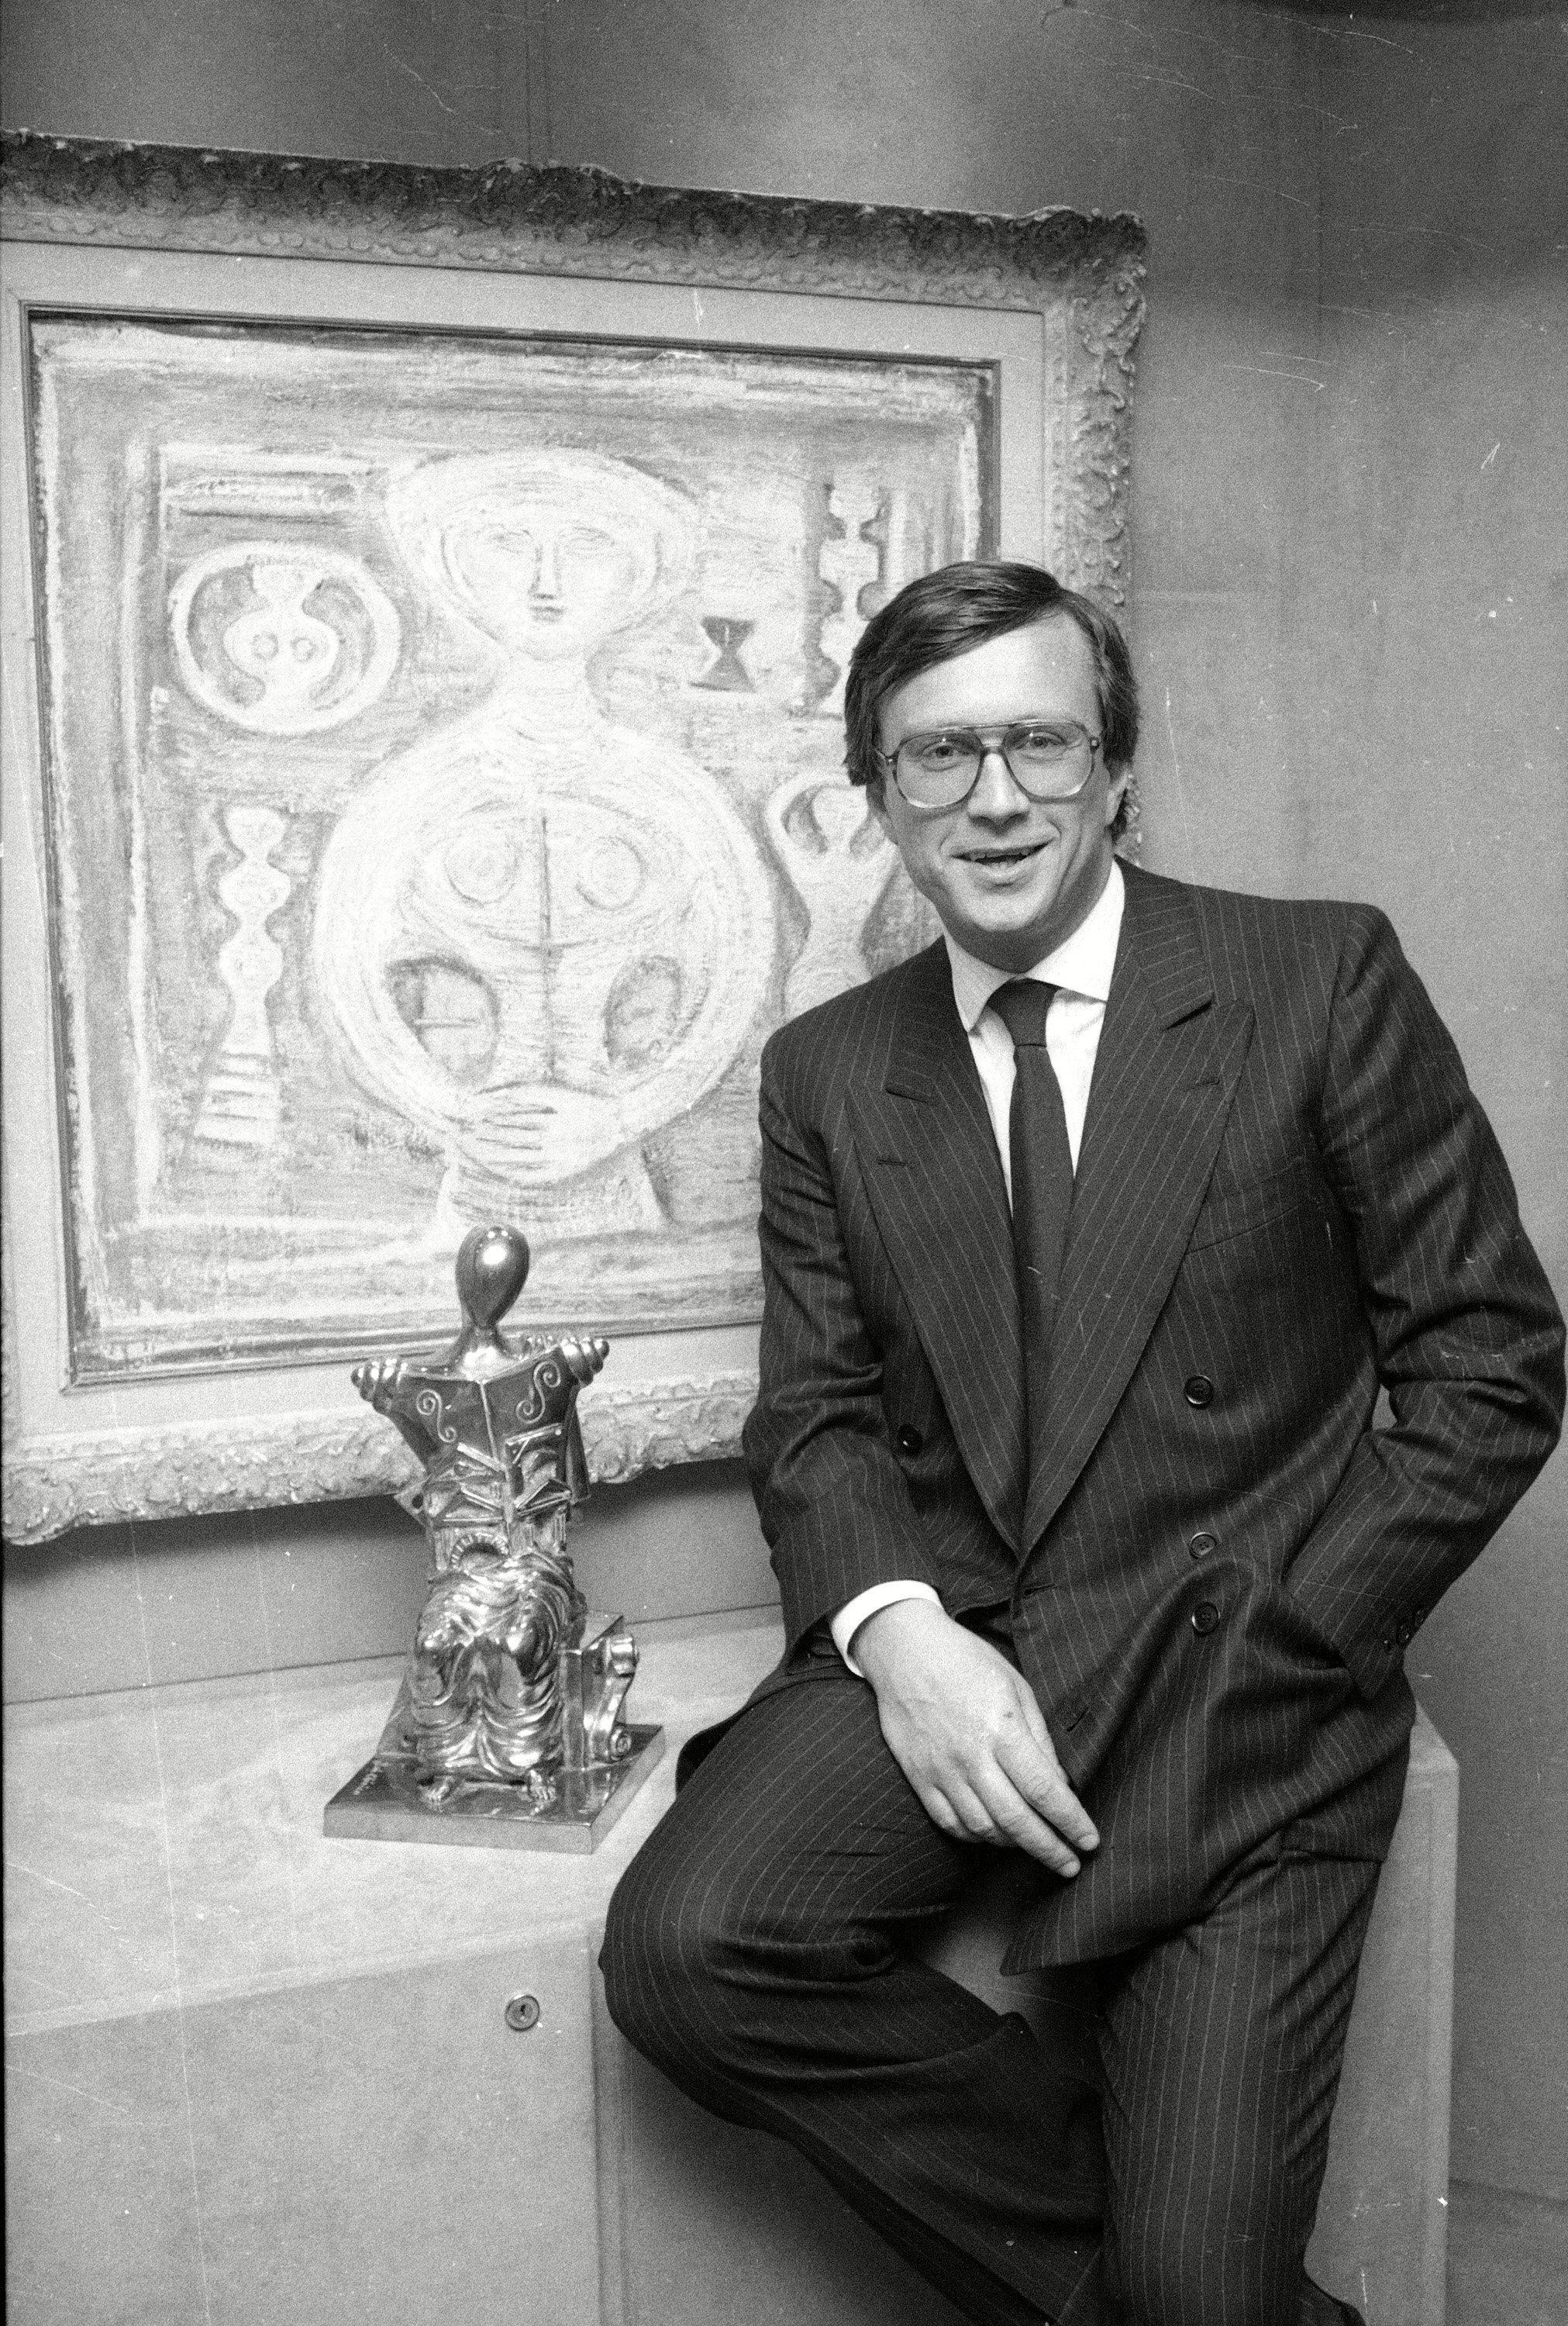 Maurizio posing in a pinstriped suit and eyeglasses